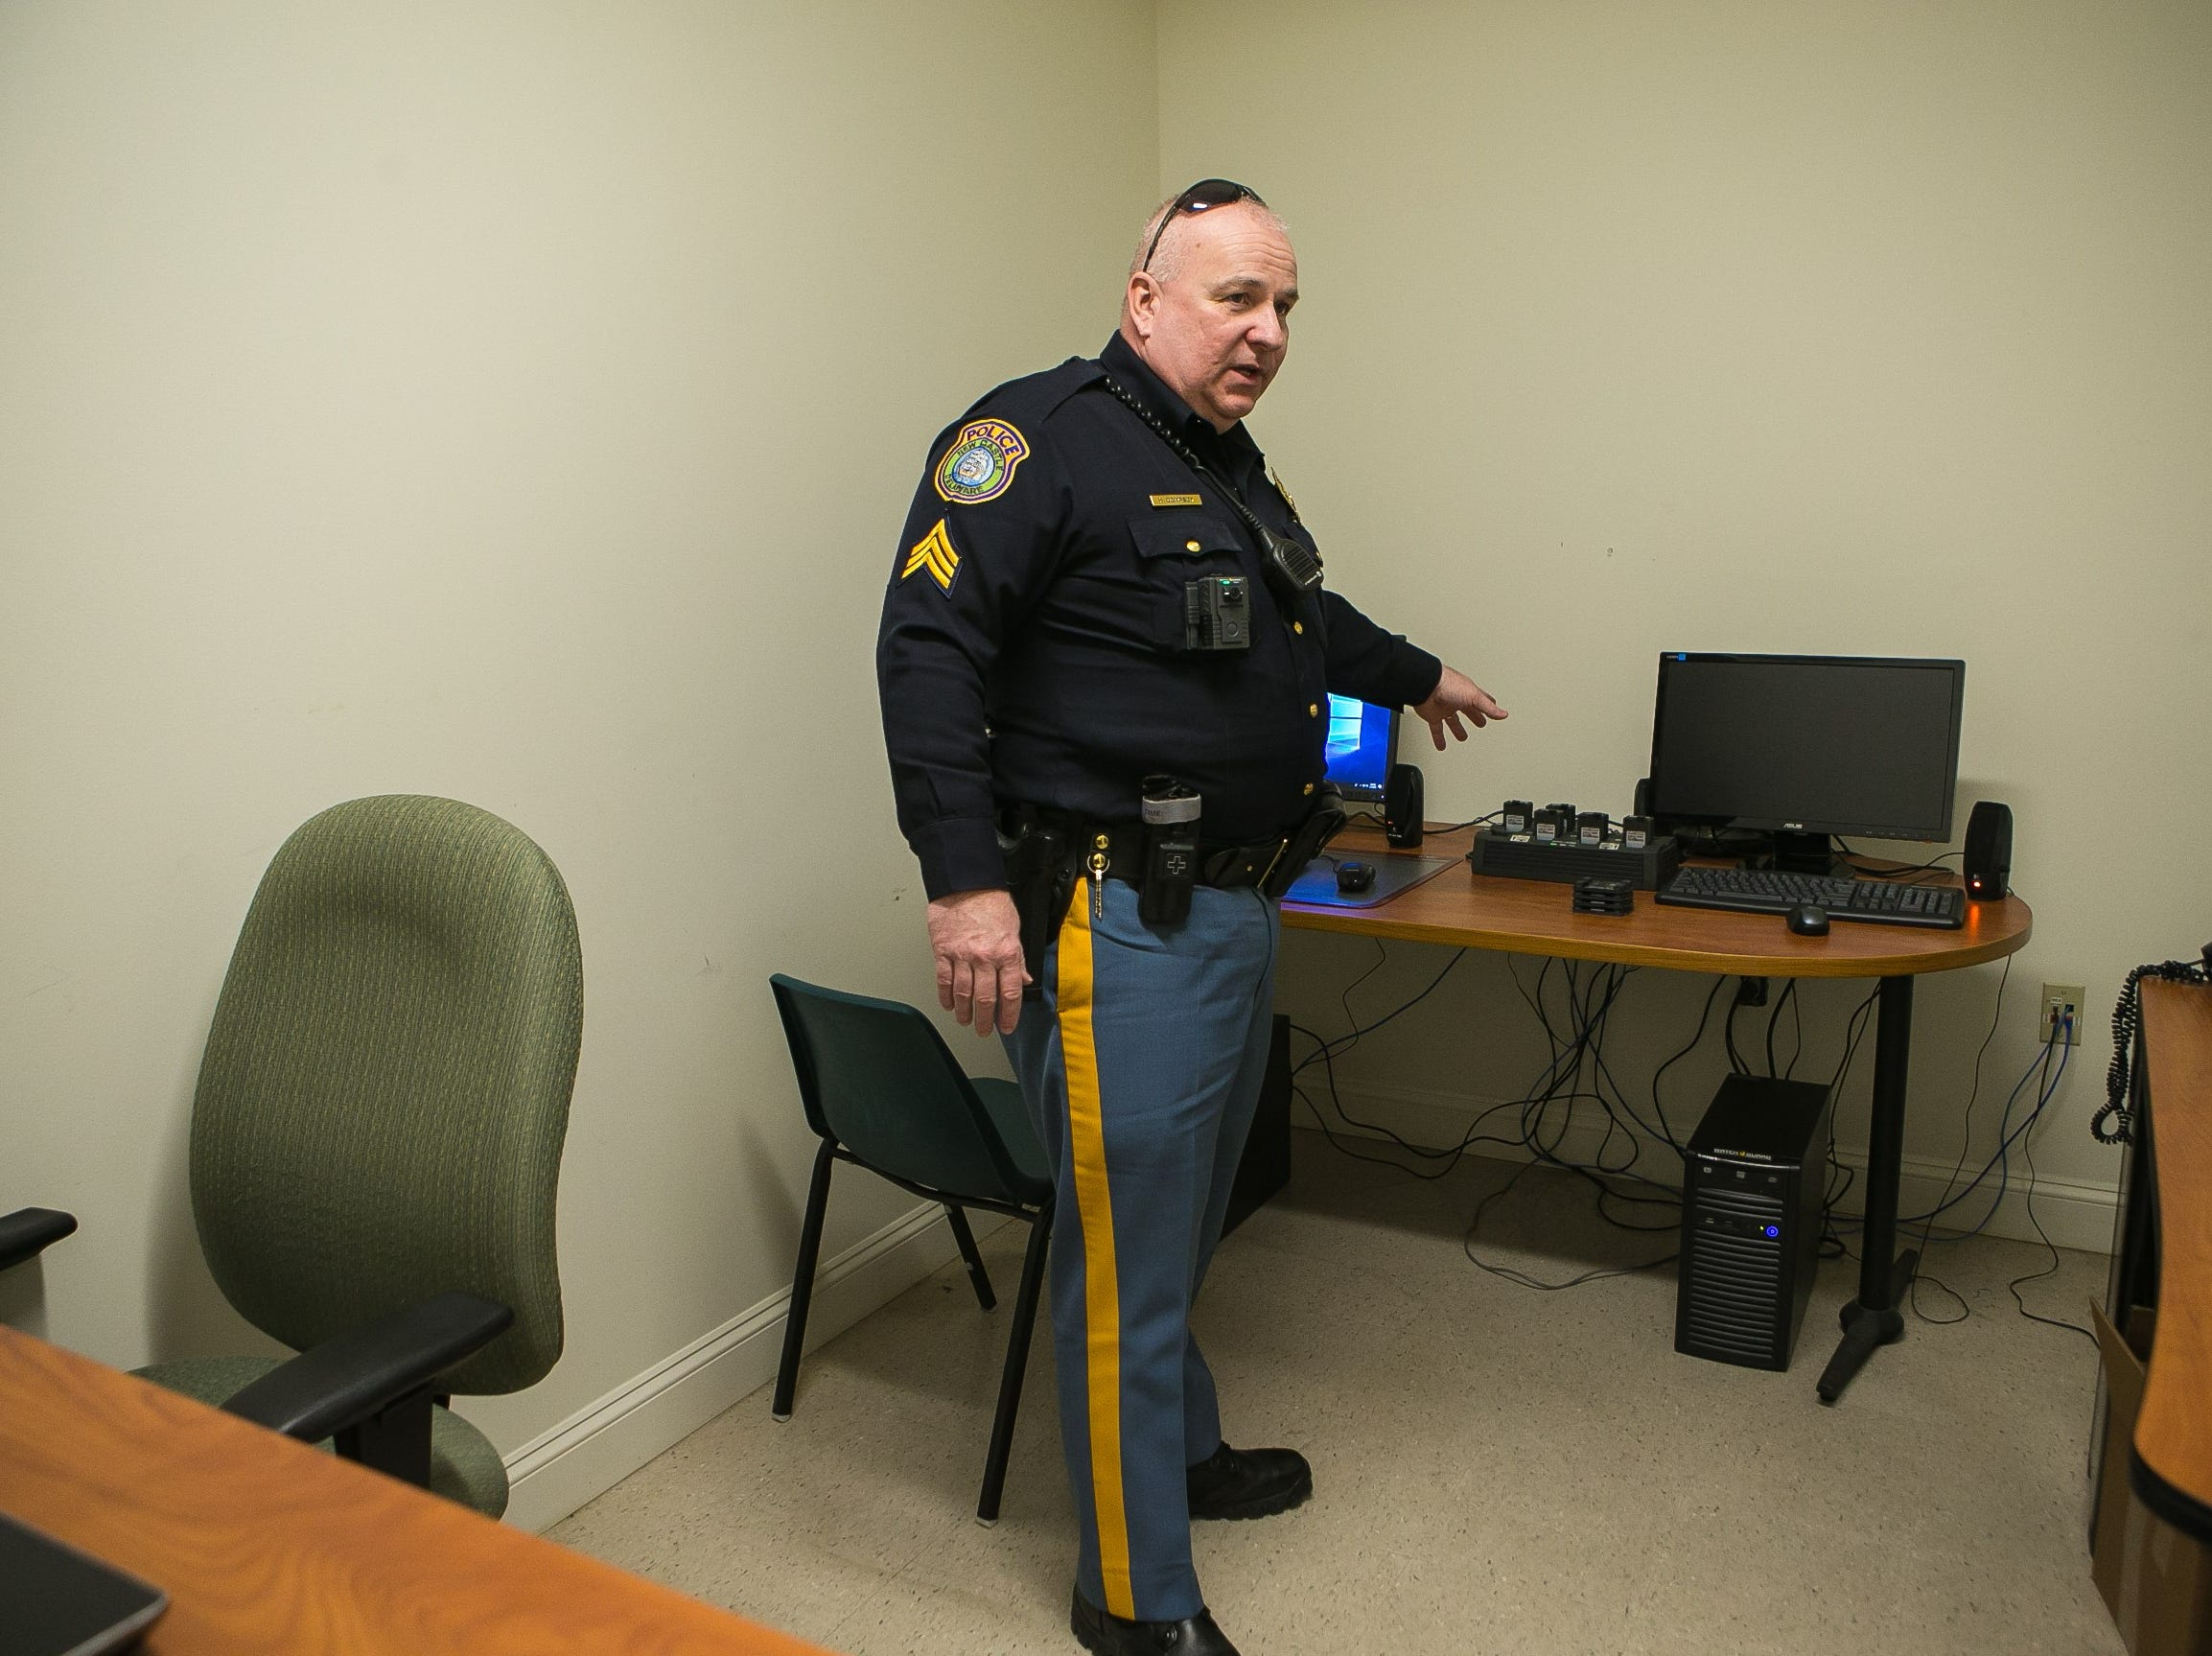 New Castle Police Sgt. Keith Dempsey gives a tour of the police department and showing their newly acquired body cam.